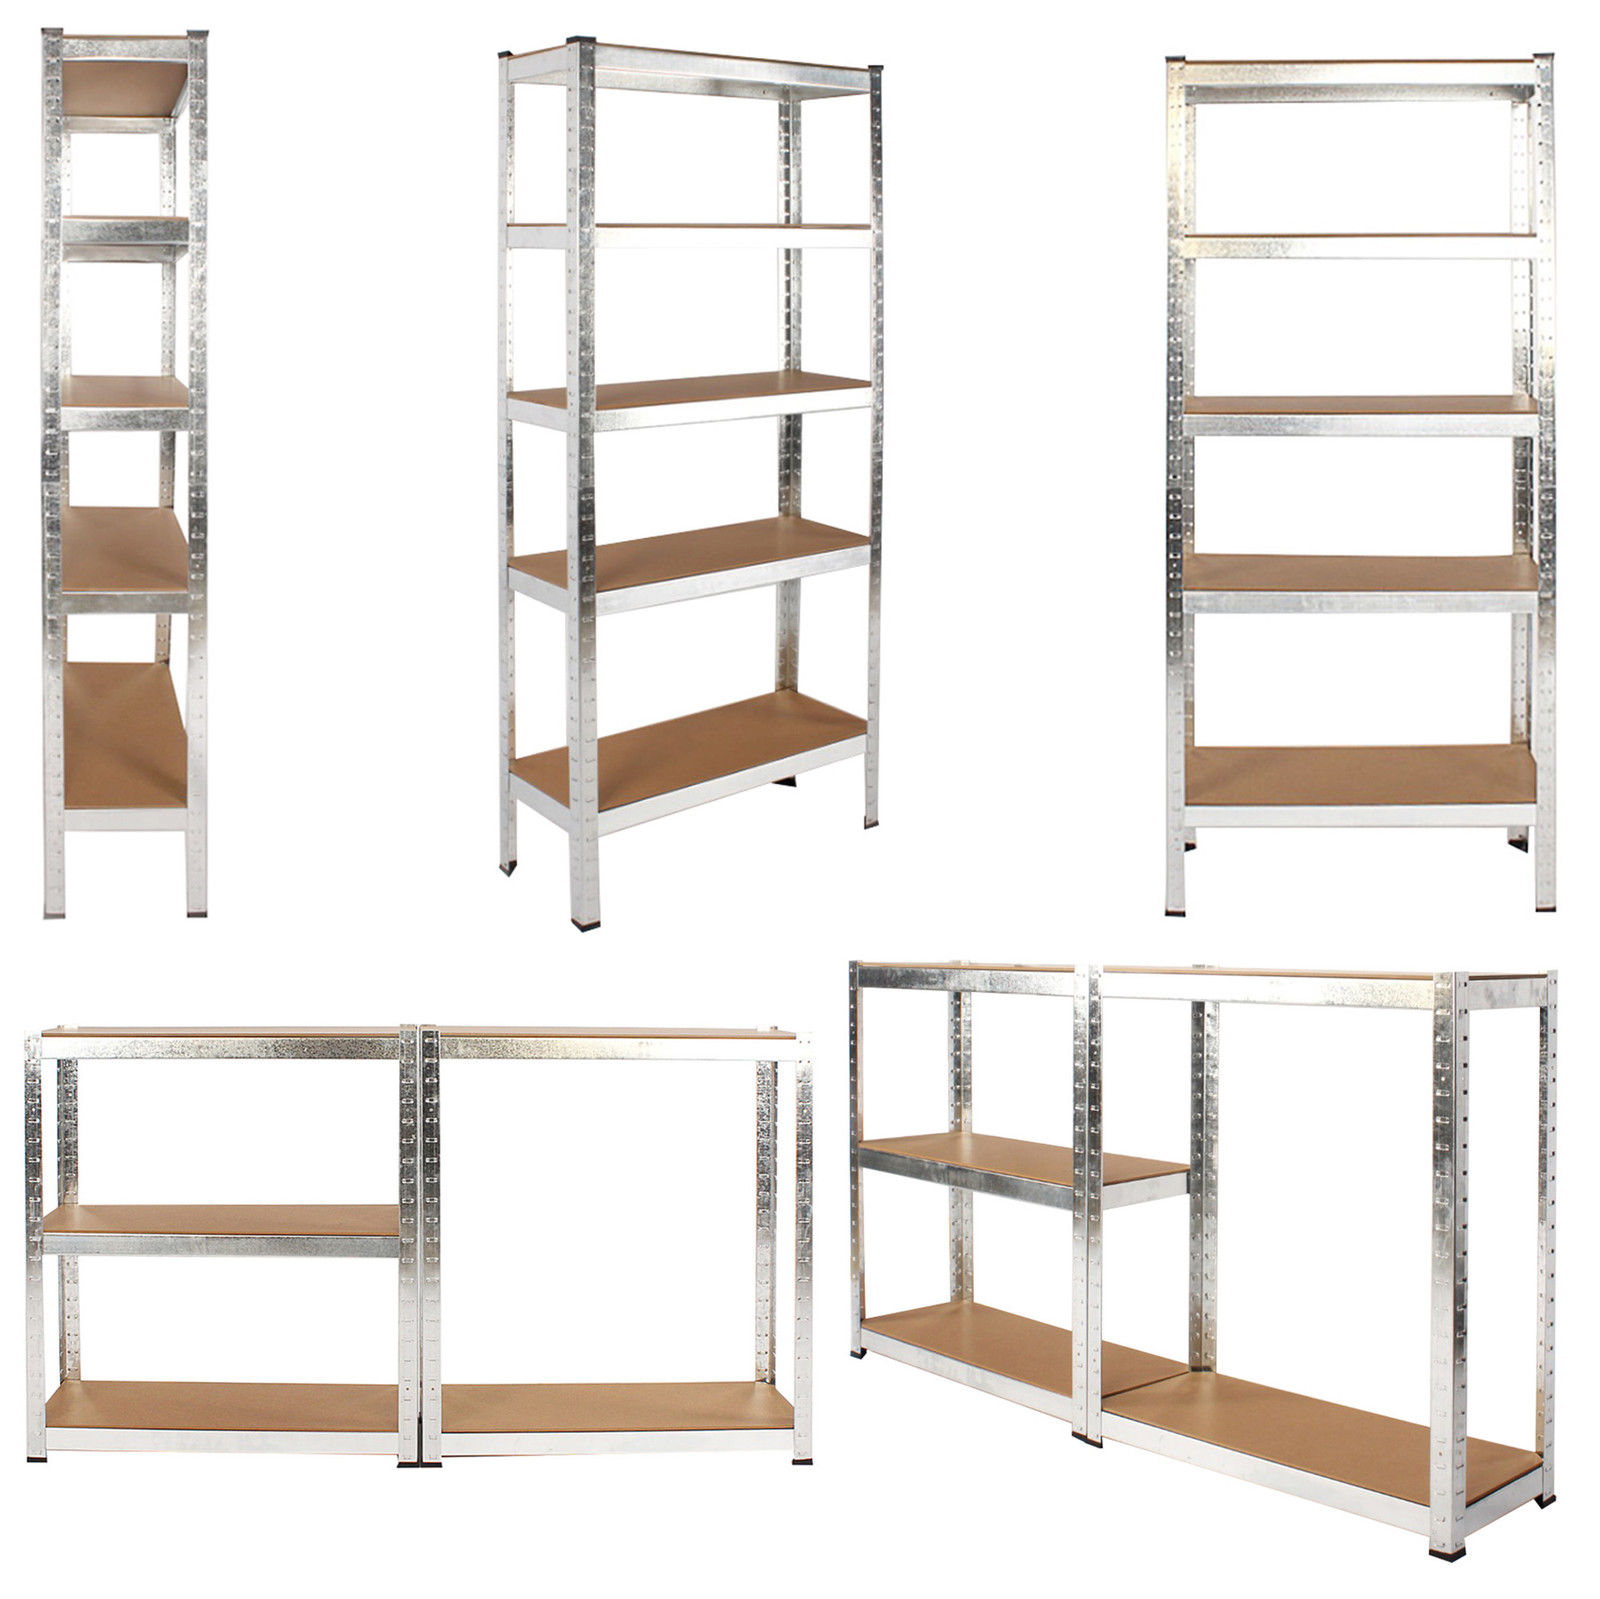 500kg Heavy Duty 5 Tier Metal Storage Garage Shelving Racking